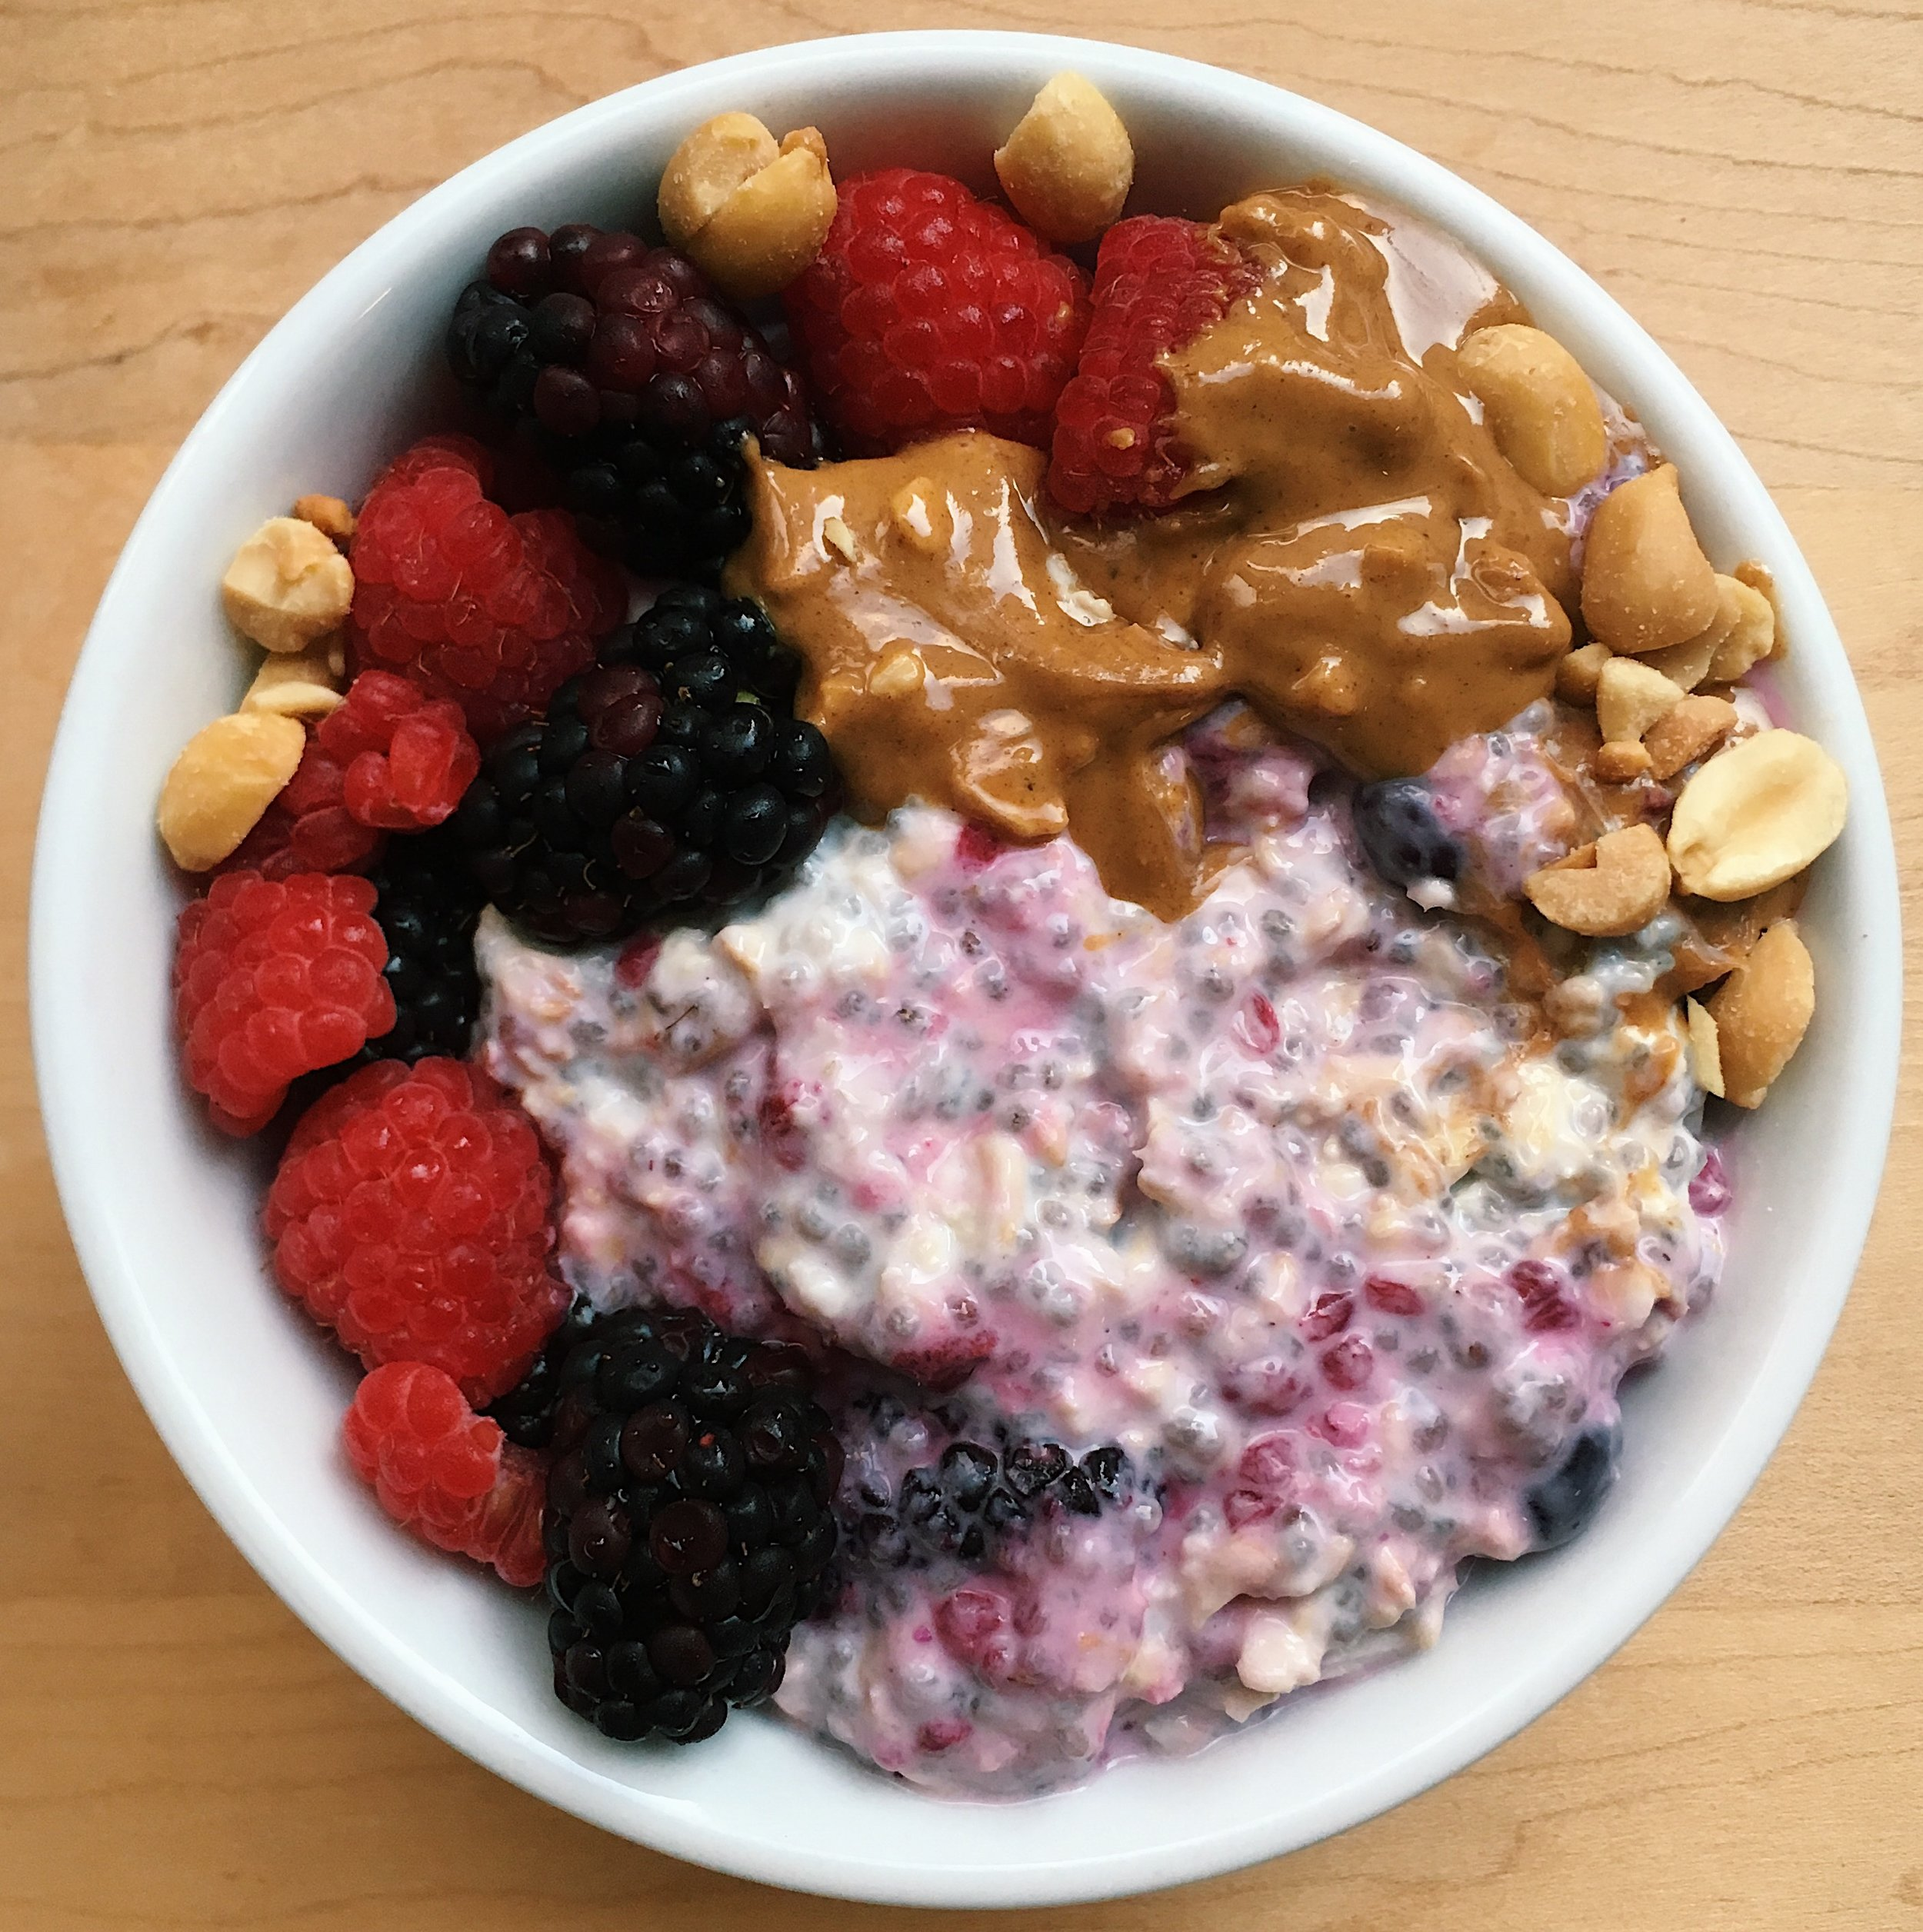 I added some fresh berries and crushed peanuts on top for aesthetics, but the recipe tastes just as good using all frozen berries and peanut butter.